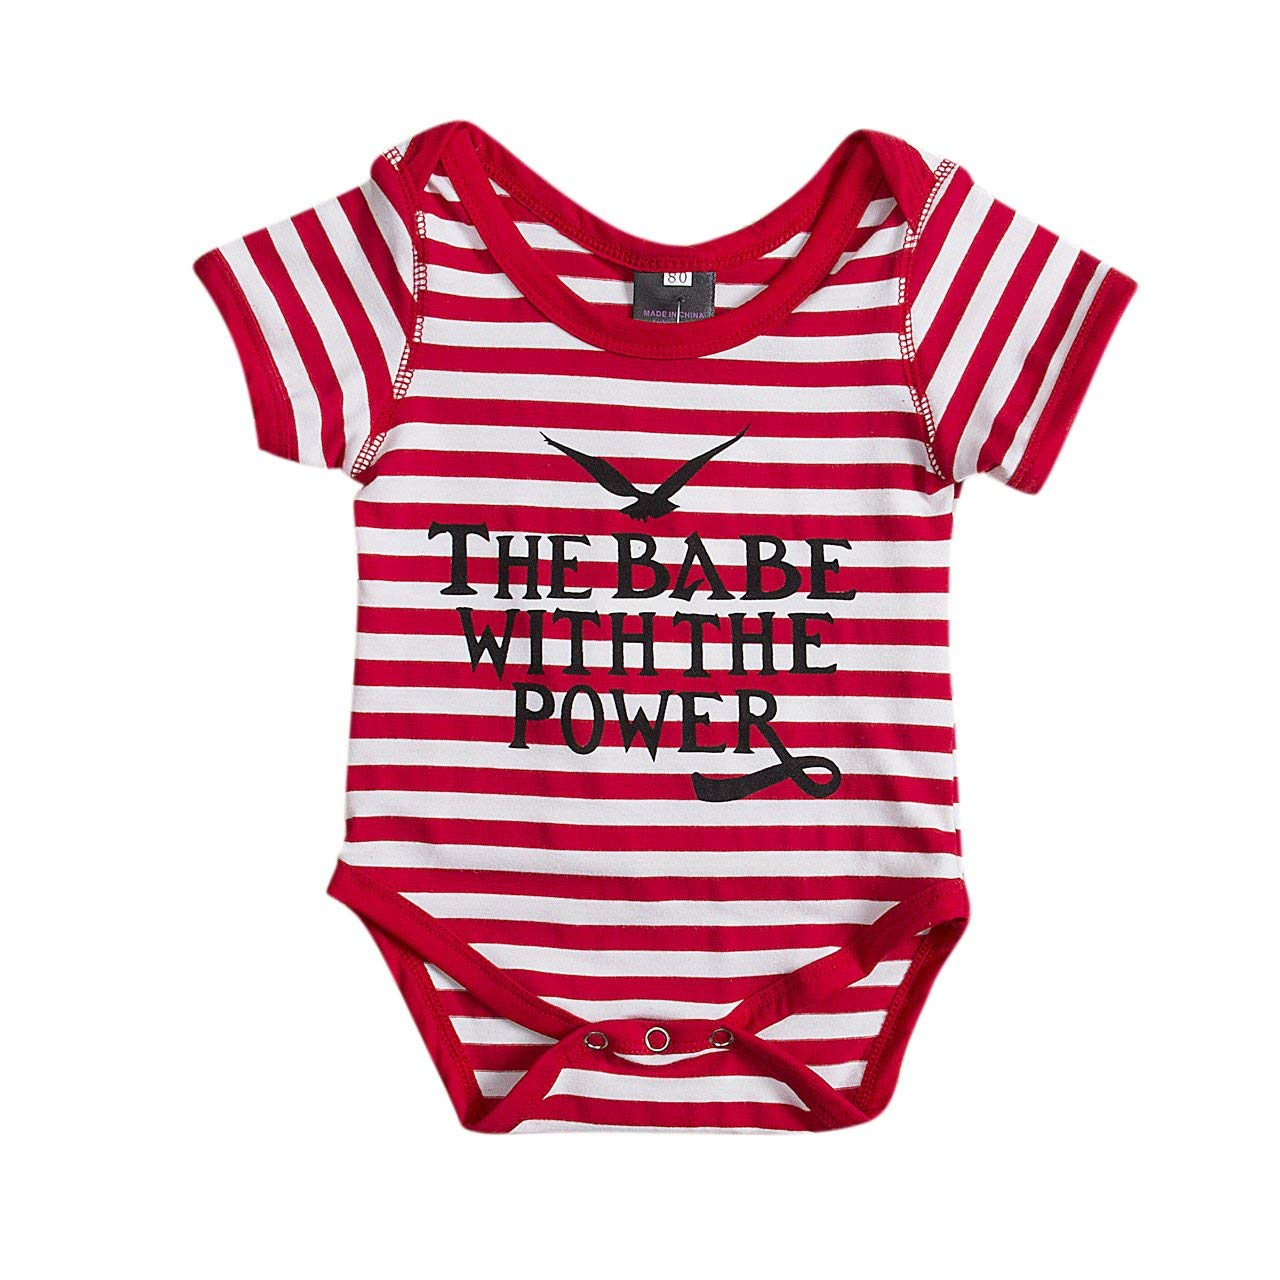 Infant Girls Boys Clothes Striped Romper Letter Print Jumpsuit Overall Outfit Set 0-18M (0-3M)